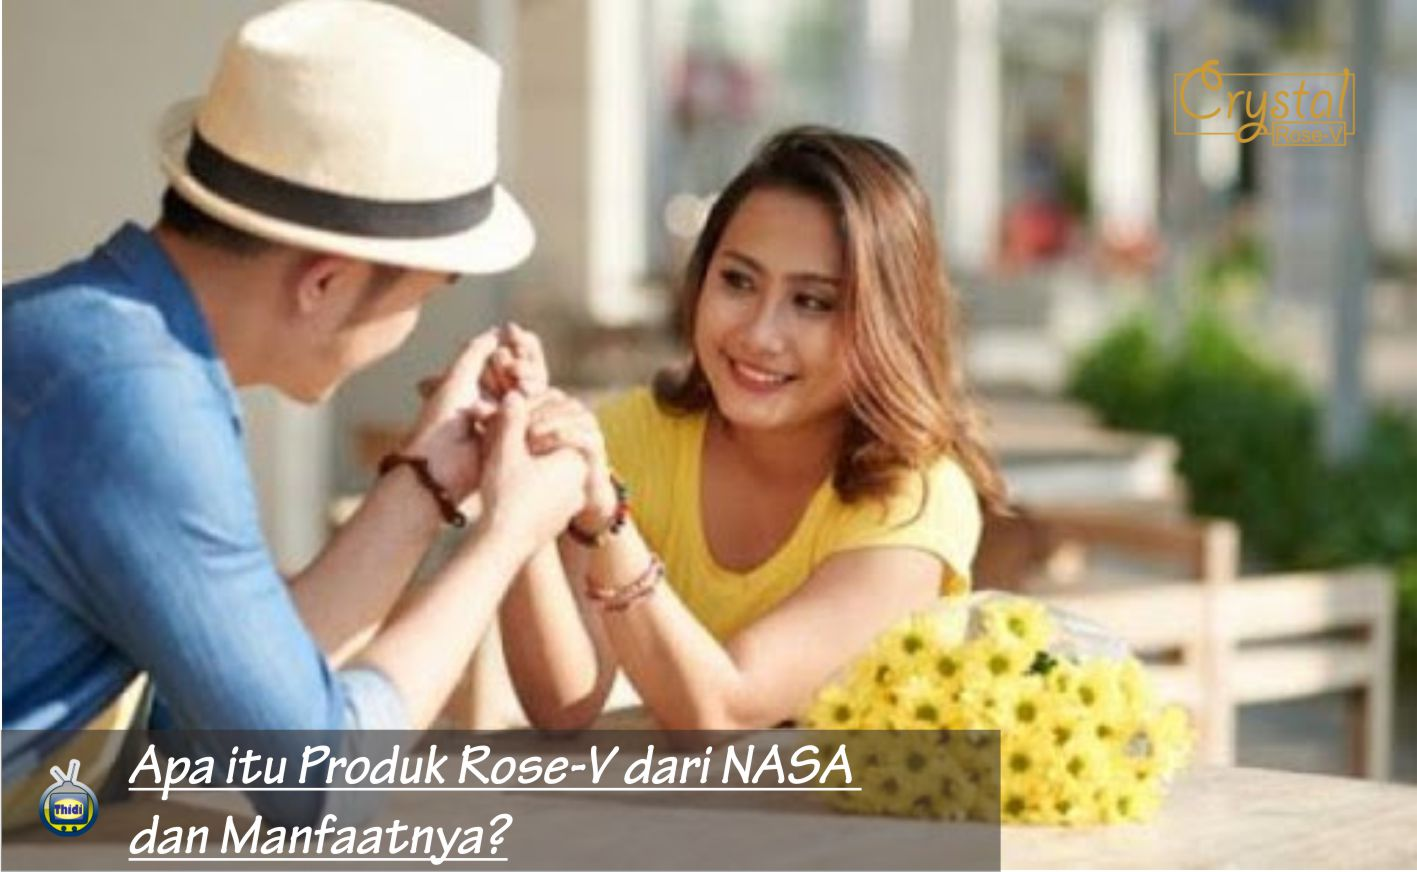 Produk Rose-V NASA